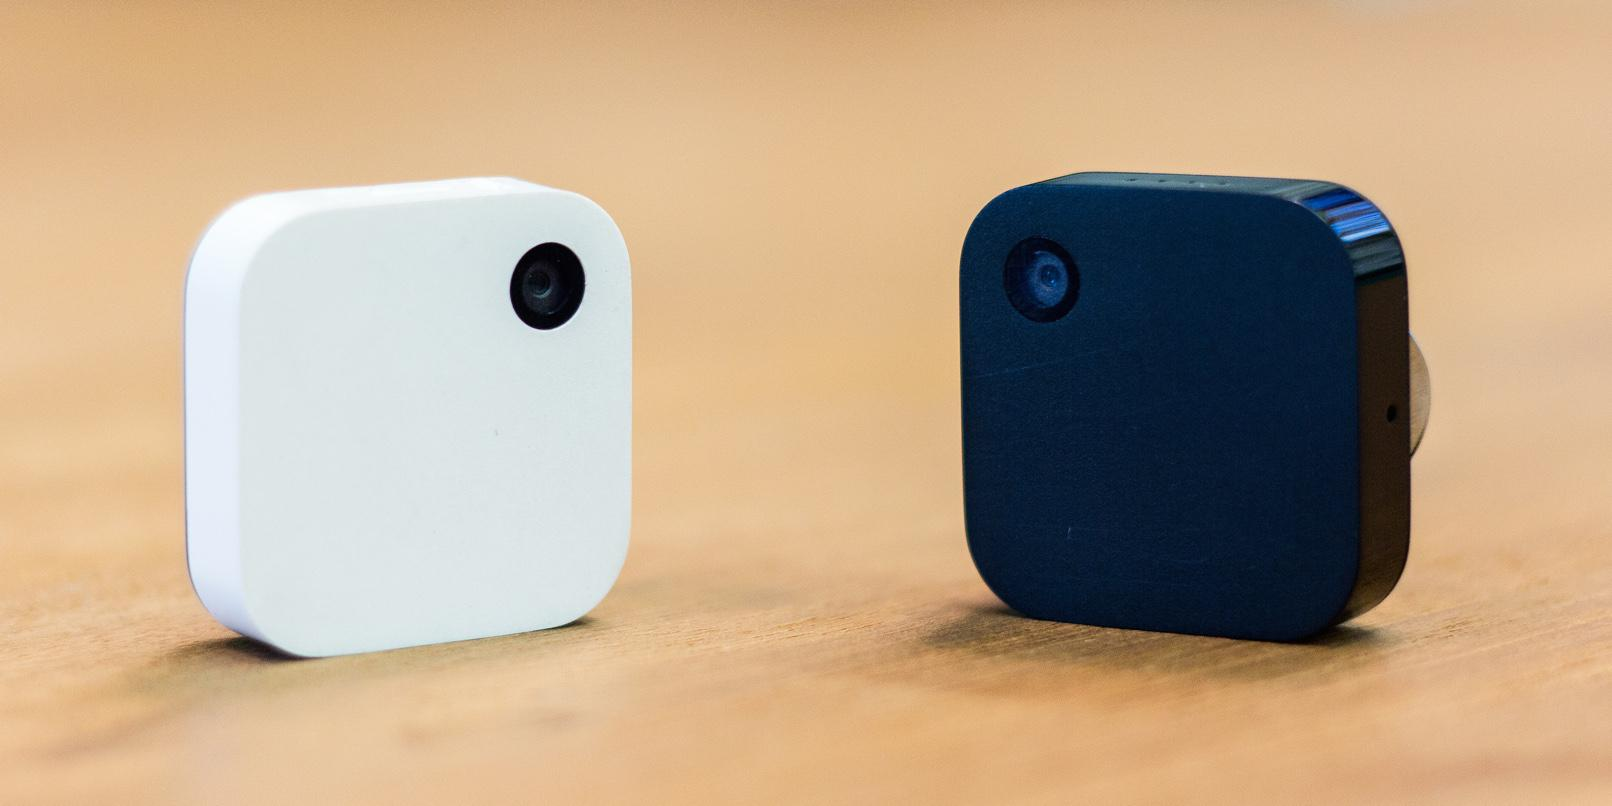 RT @TheNextWeb: Narrative's Clip 2 wearable camera will shoot video to log your life in HD http://t.co/teOOHxbHzG http://t.co/vWePPEYg6x